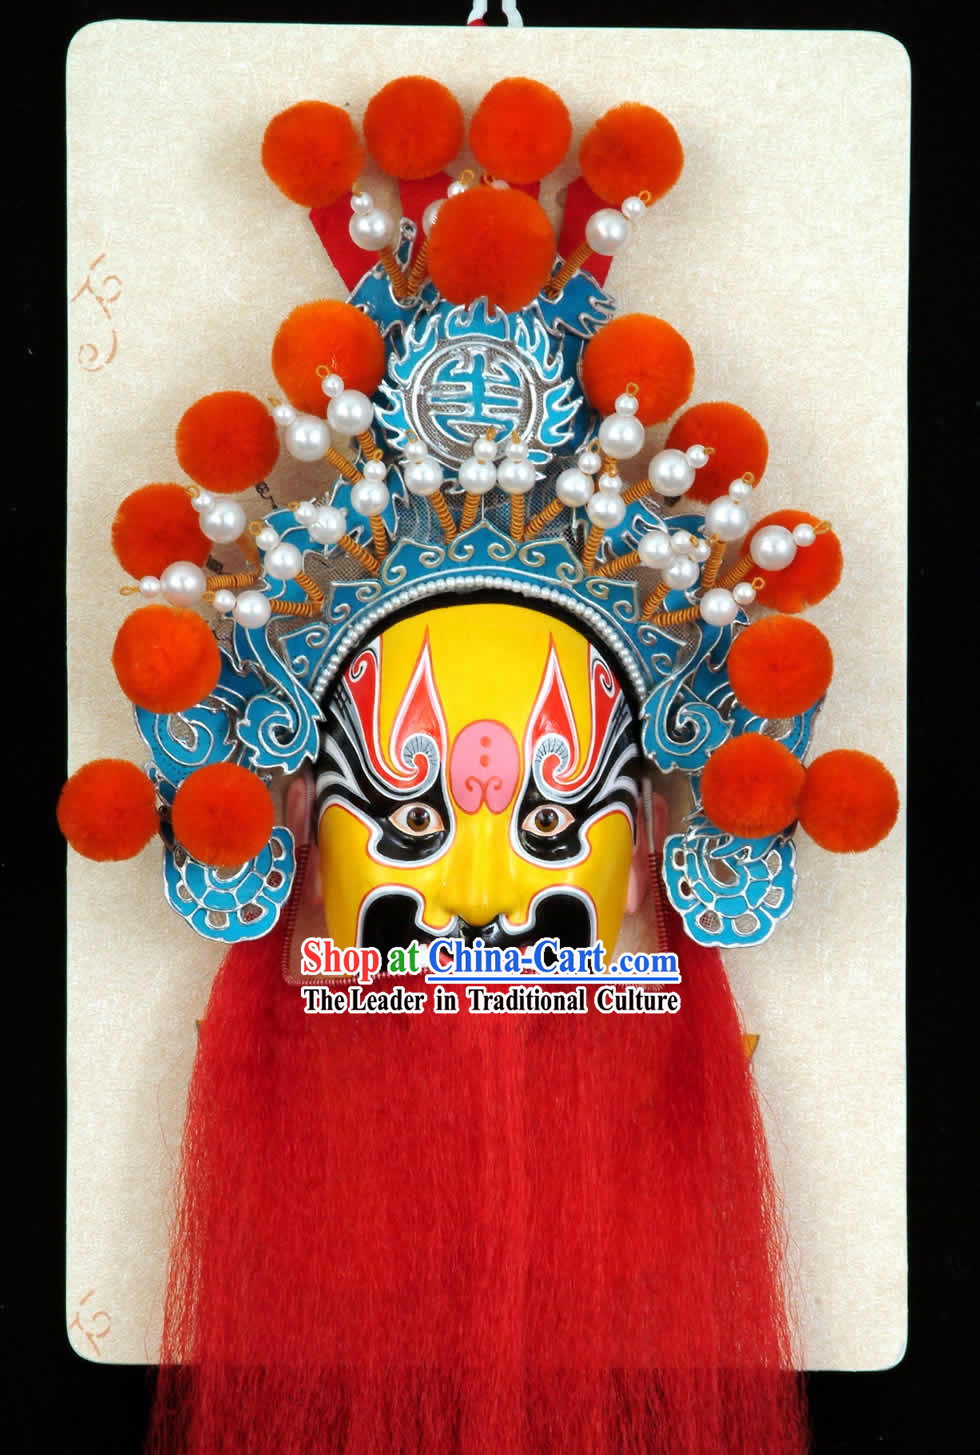 Handcrafted Peking Opera Mask Hanging Decoration - Dian Wei